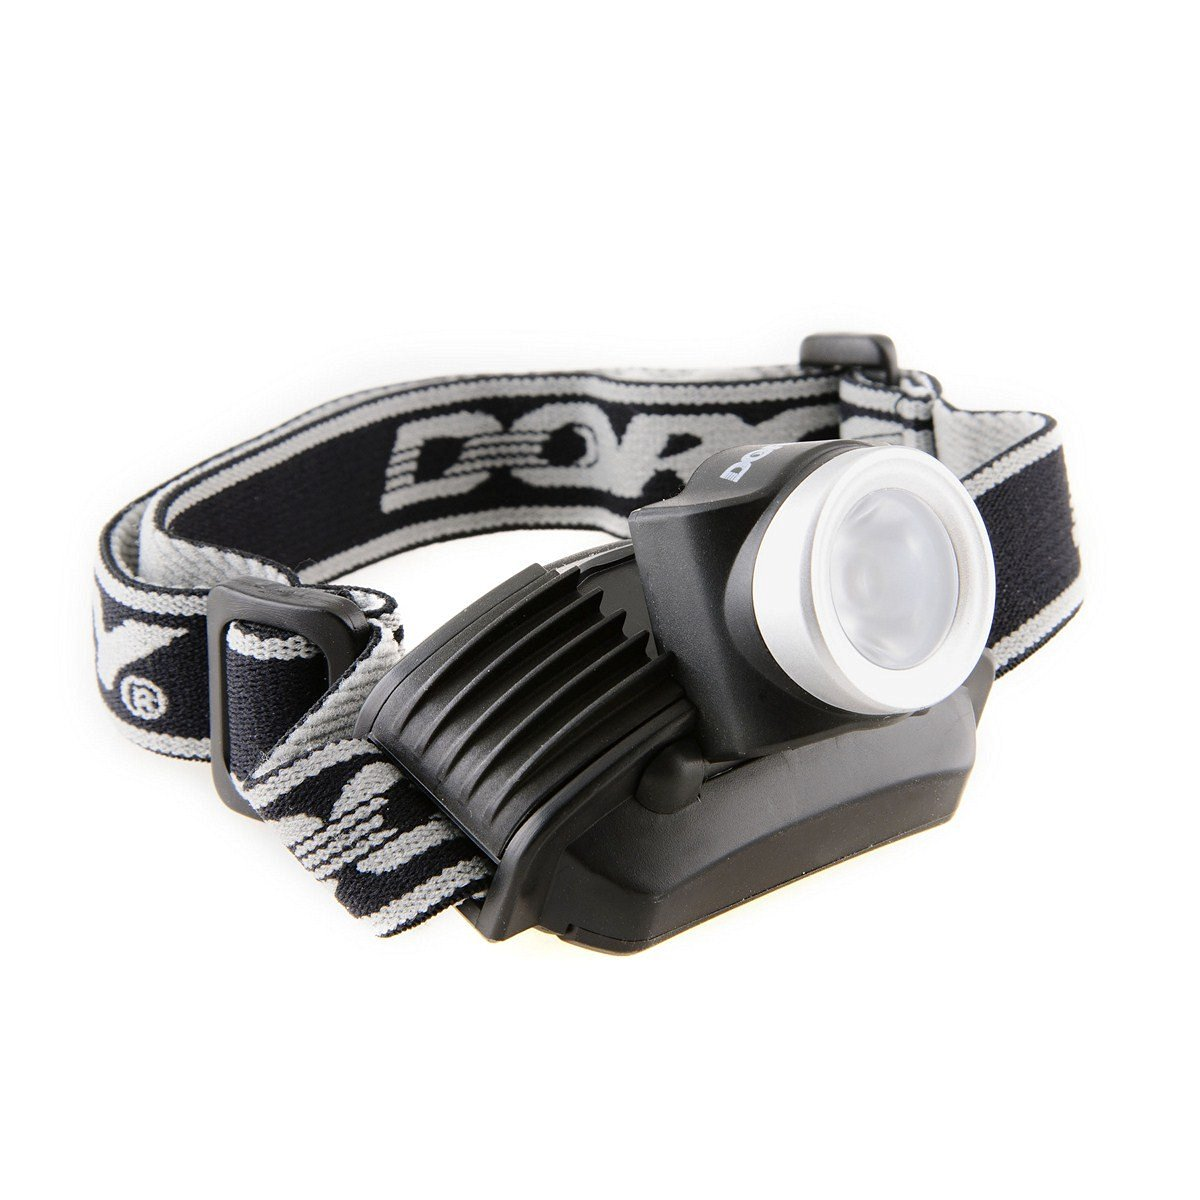 Dorcy 120-Lumen Weather Resistant Broad Beam LED Headlight Flashlight with (3) Brightness Modes, Black and Silver (41-2096)